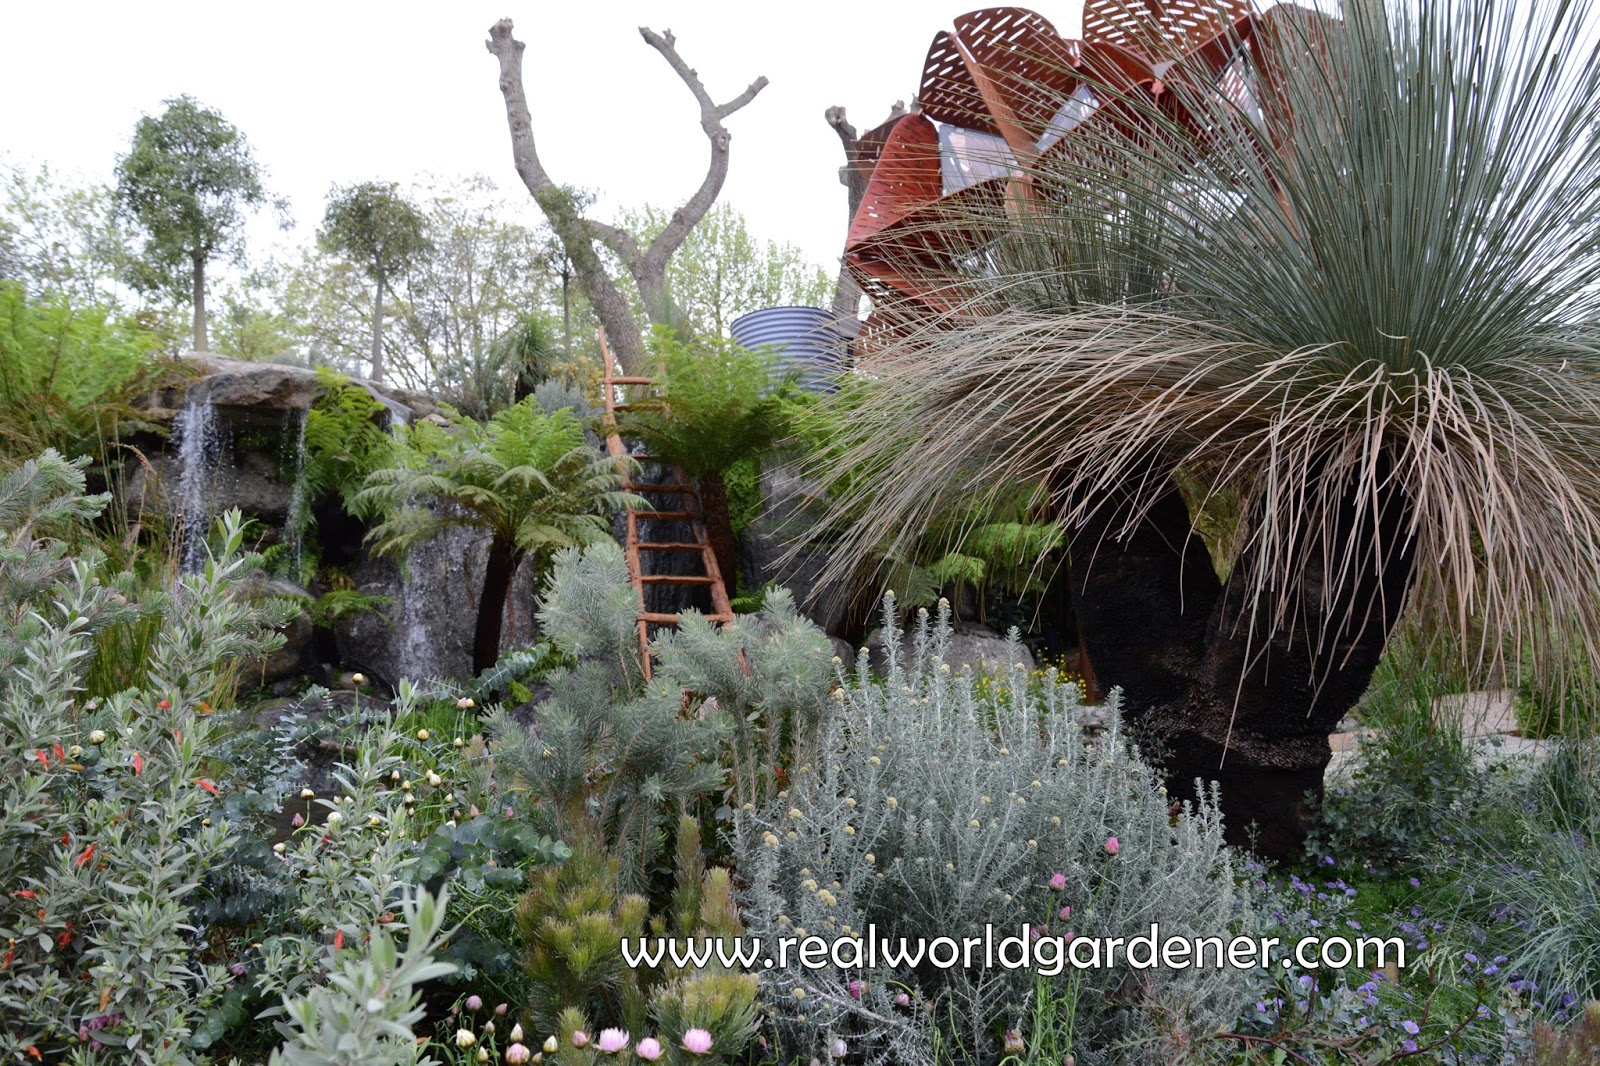 Real world gardener australian garden idea in garden for Garden design podcast